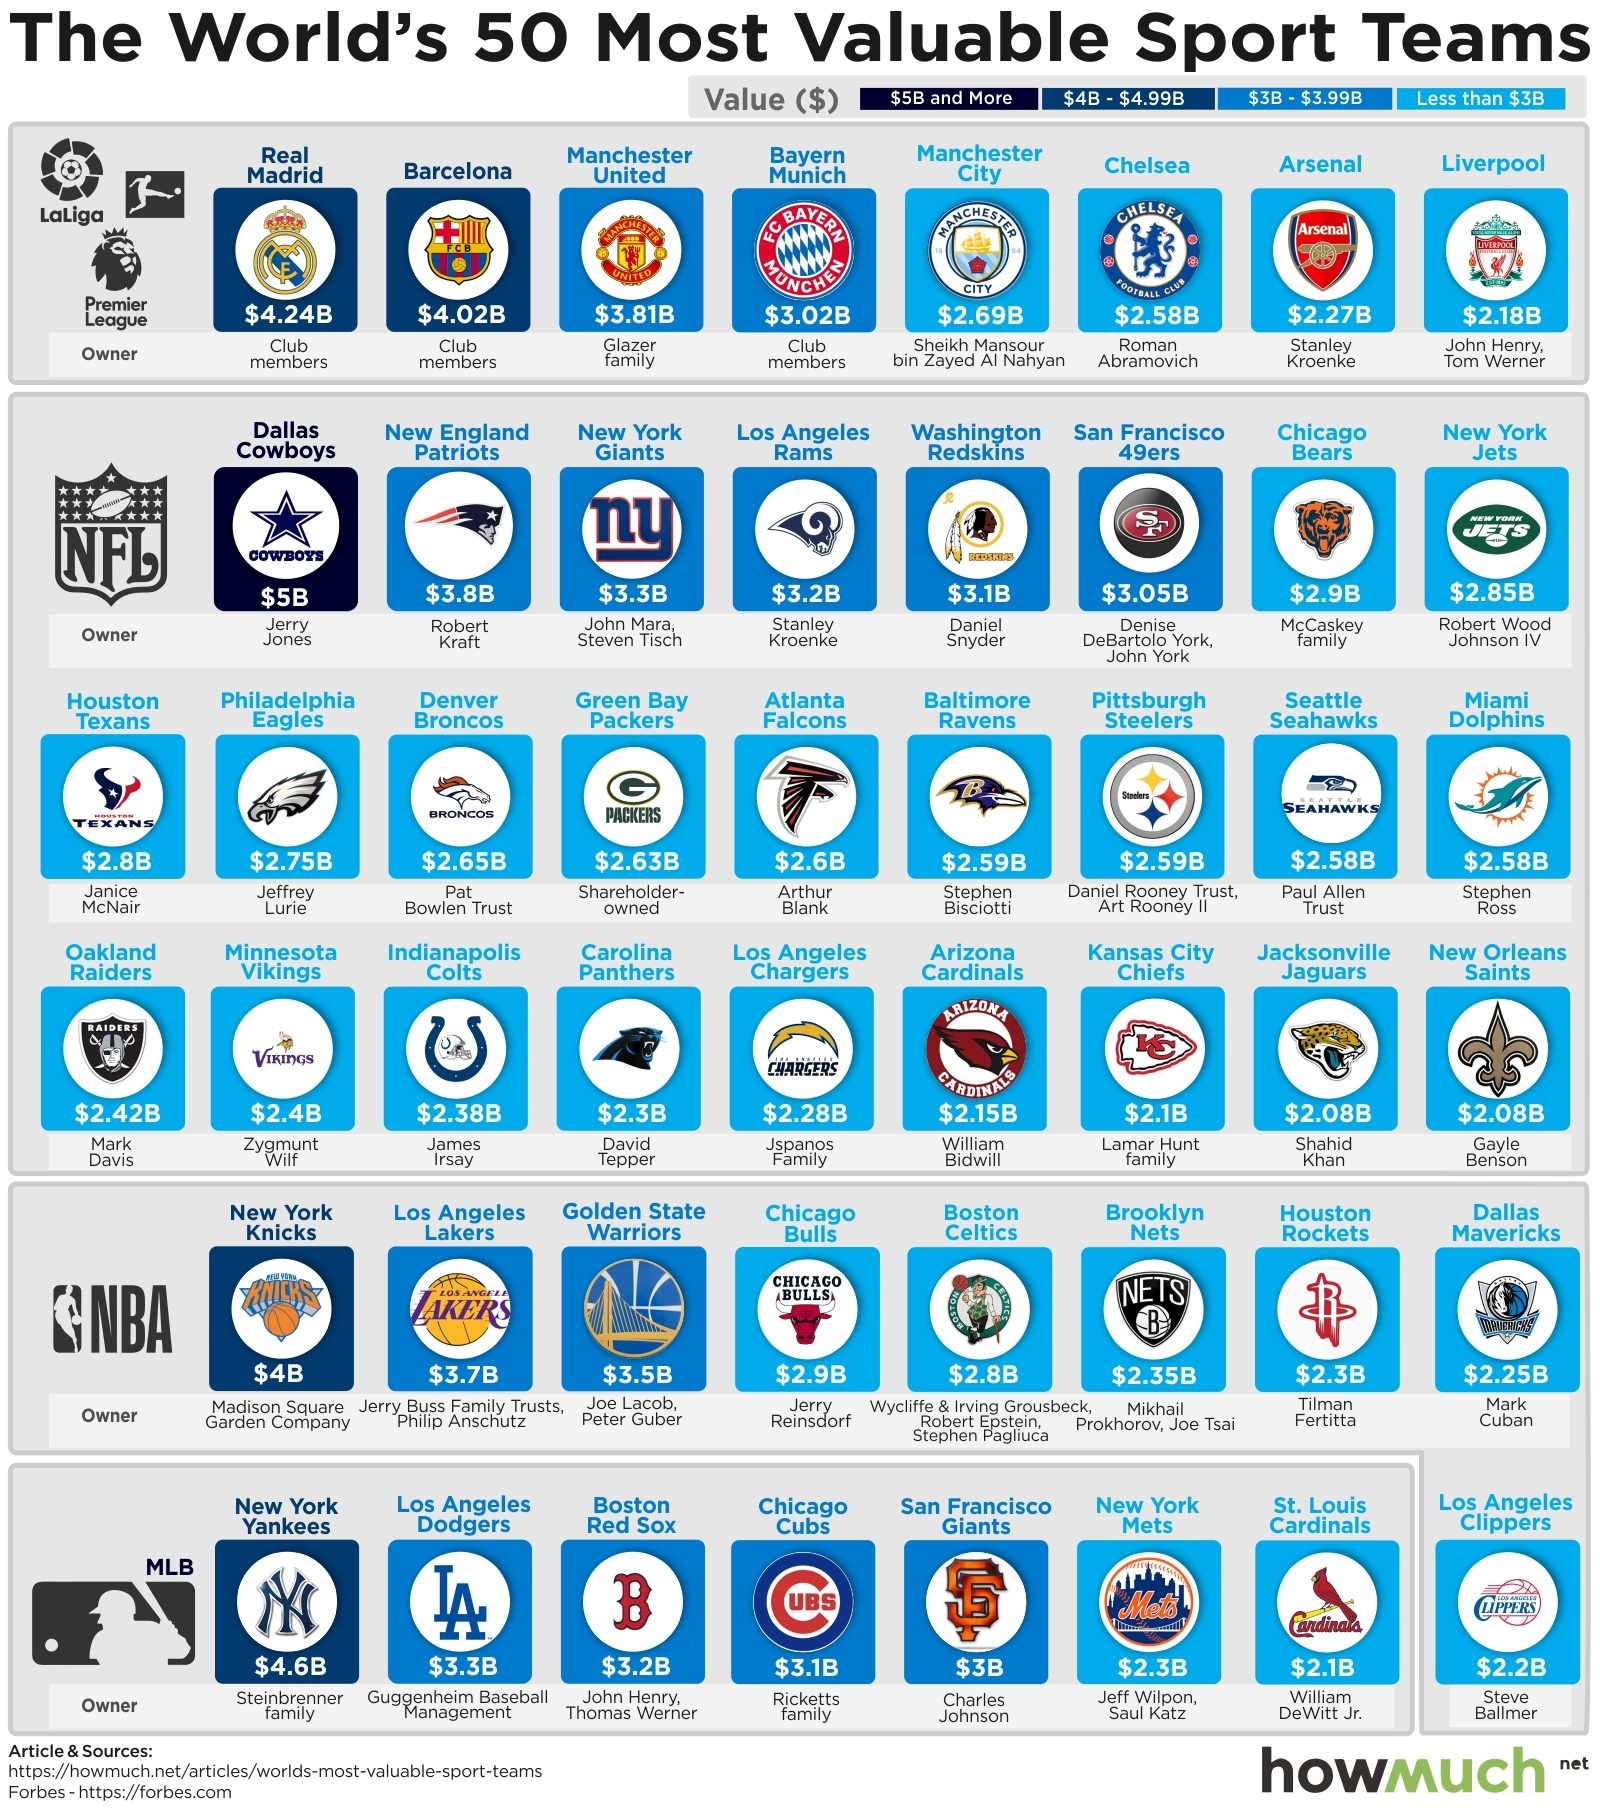 Most Valuable Sports Teams